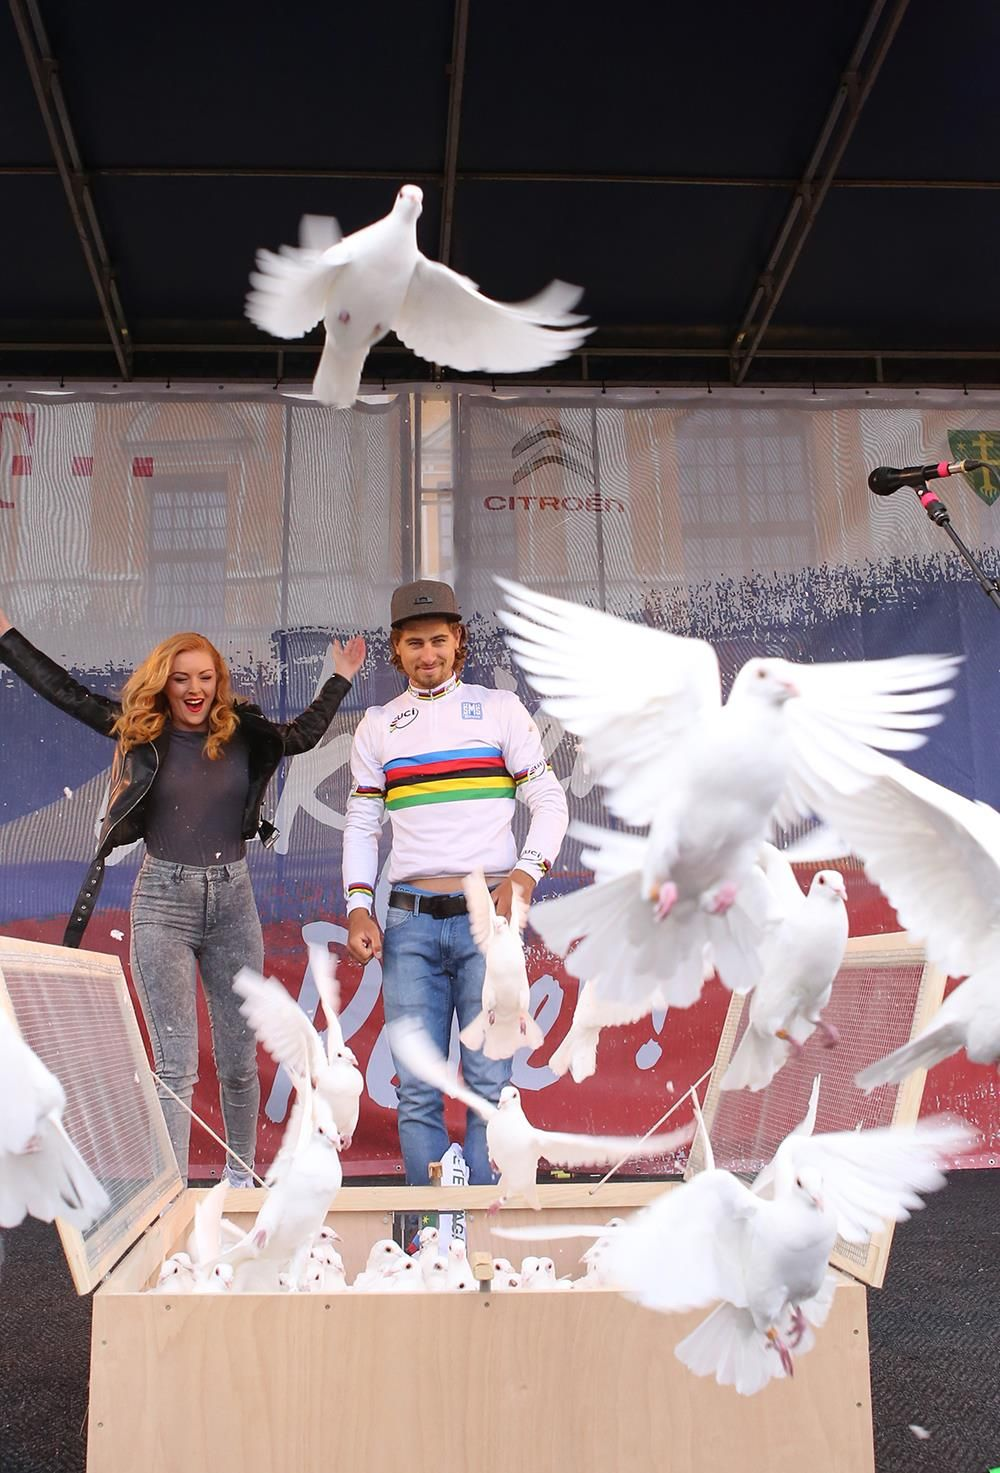 PETER SAGAN / WORLD CHAMP IN HIS HOMETOWN ZILINA